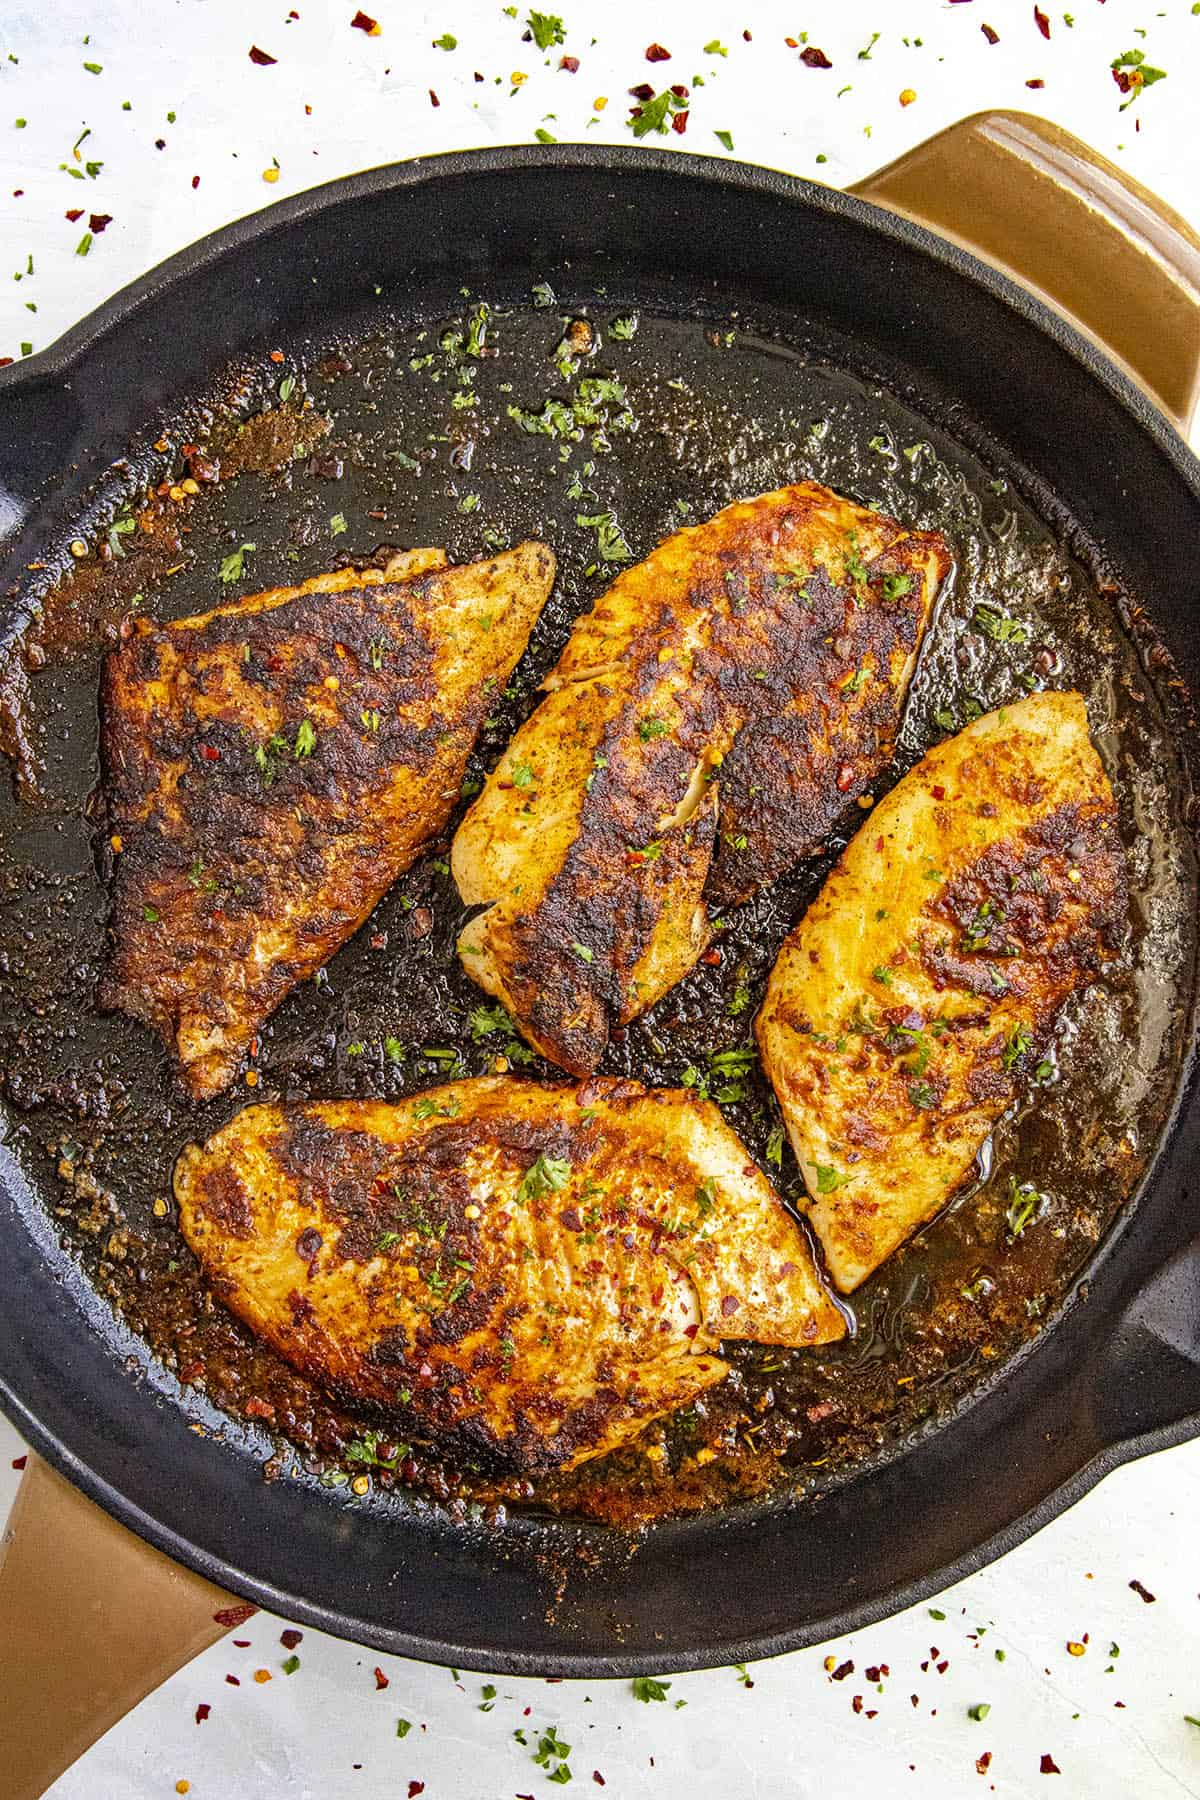 Spicy Blackened Fish in a pan with lots of seasoning